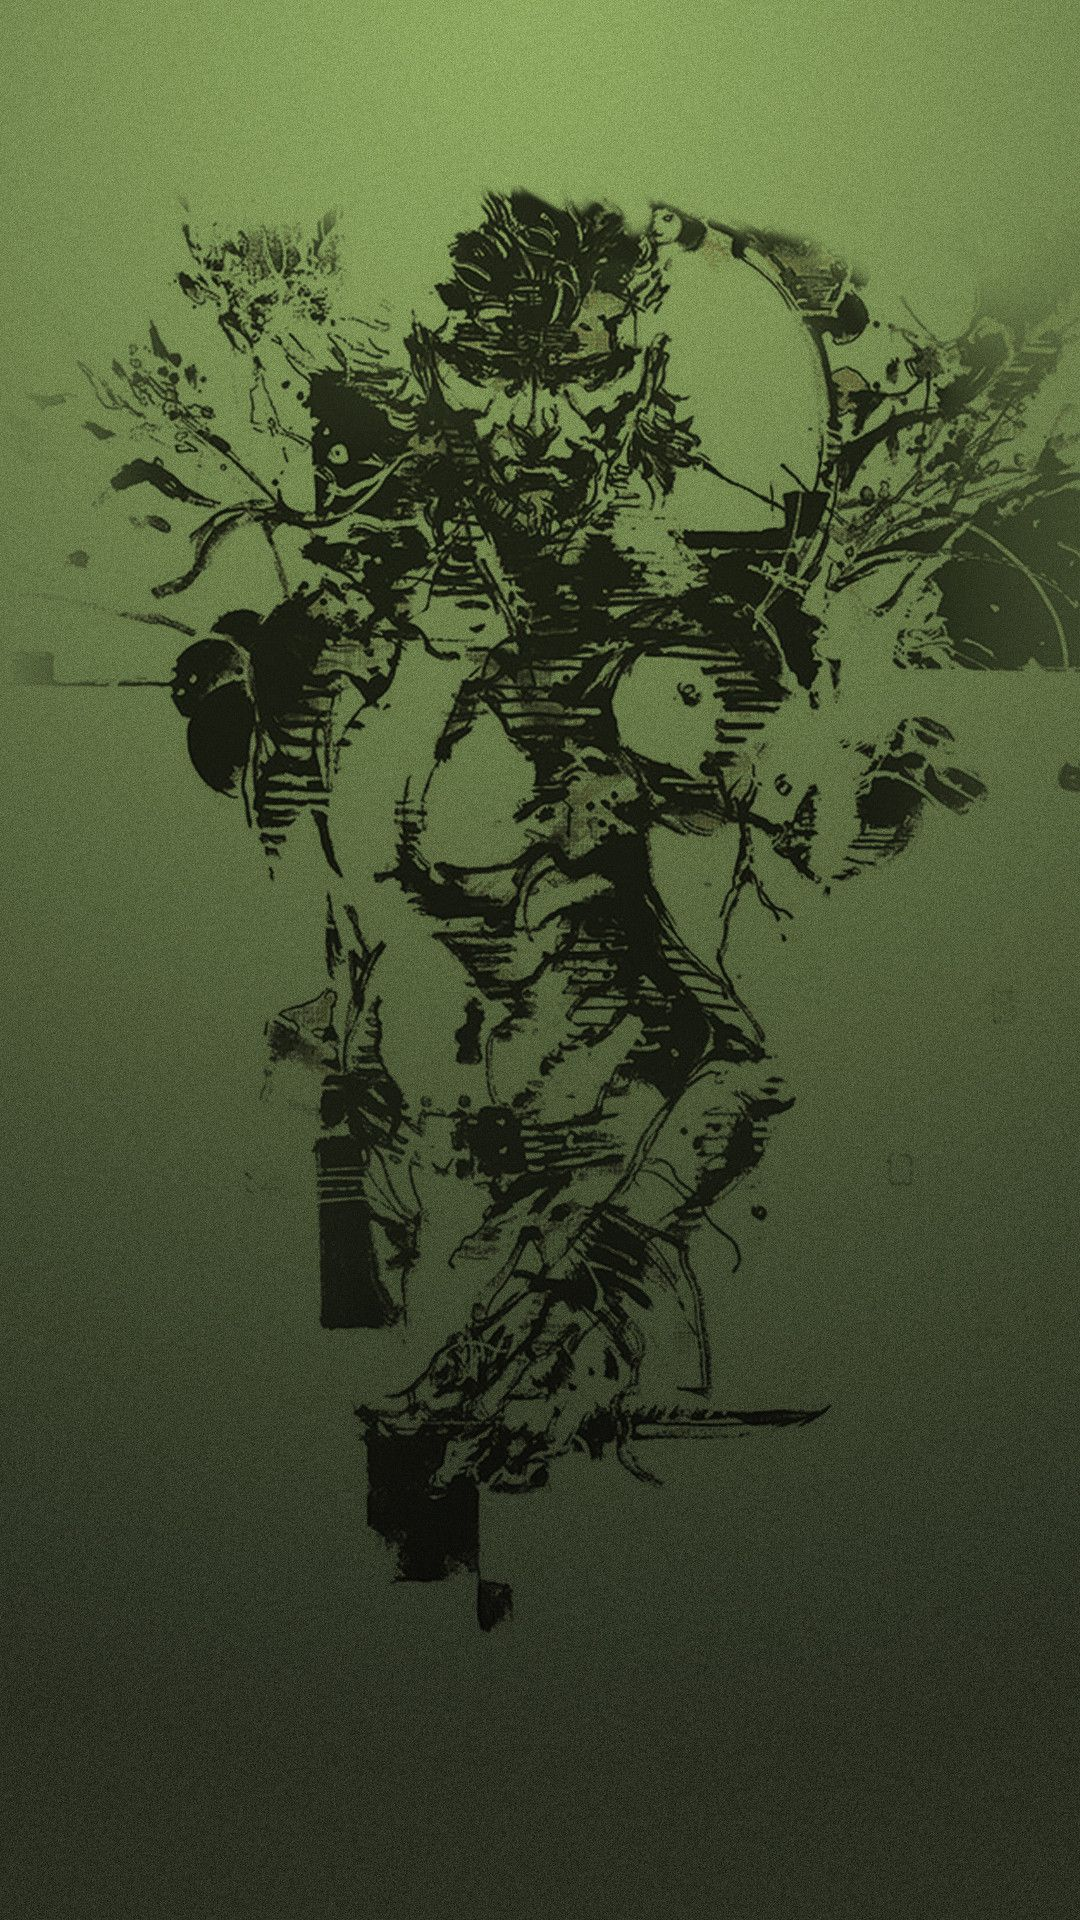 1080x1920 MGS3 and GZ Wallpapers - Album on Imgur